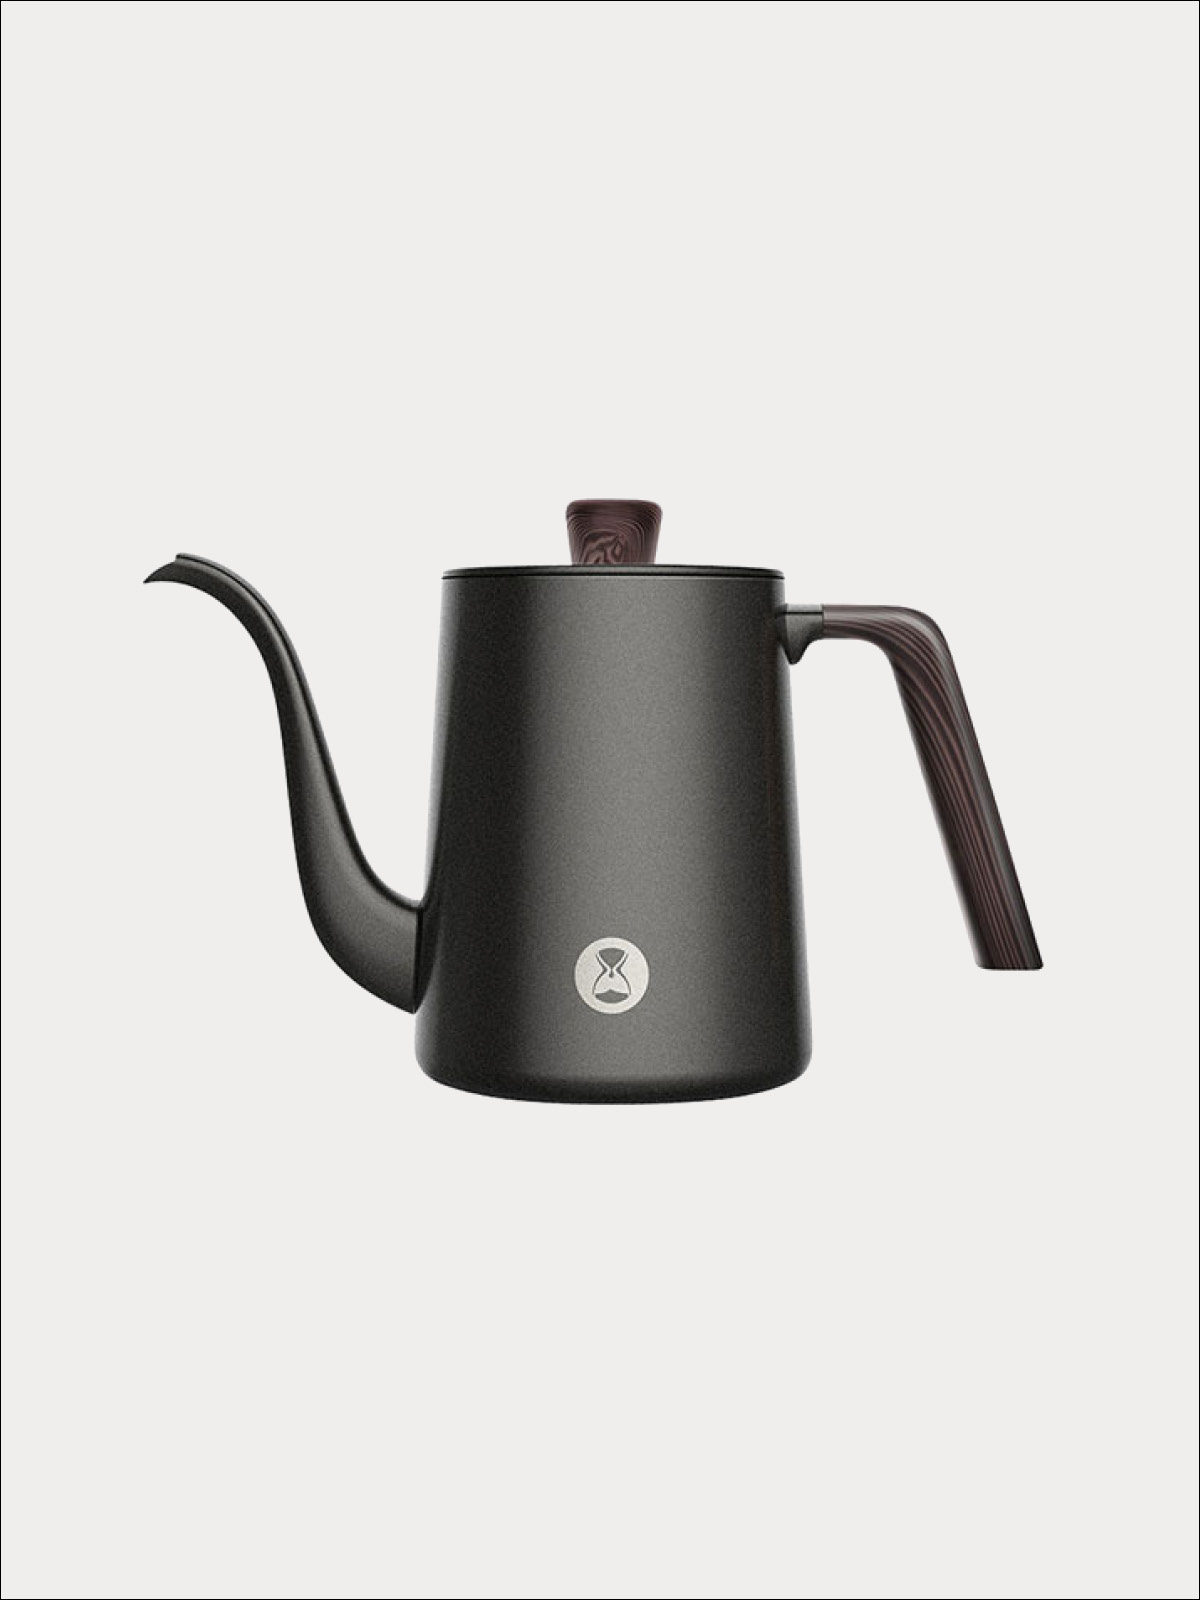 Timemore Fish Pouring Kettle